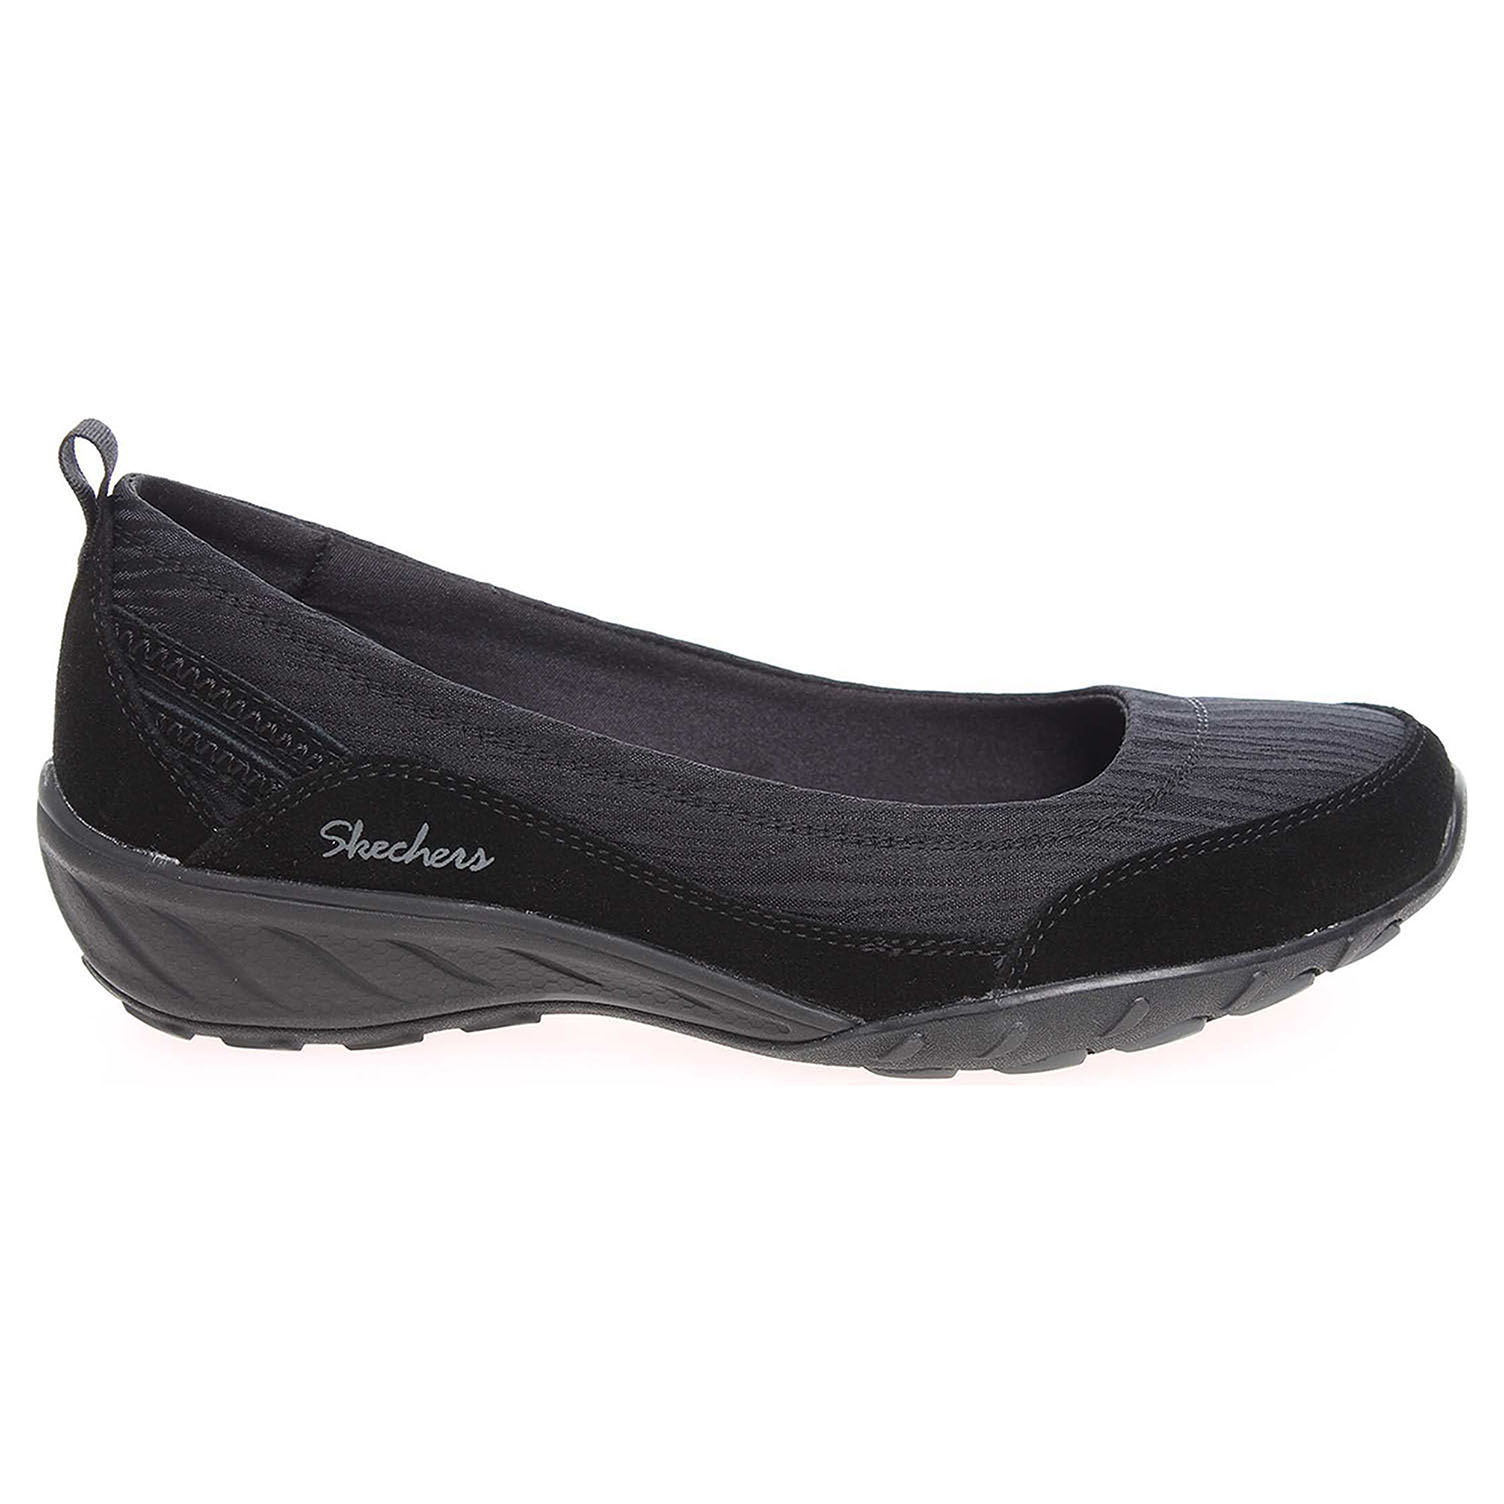 Skechers Dressed Up black 36